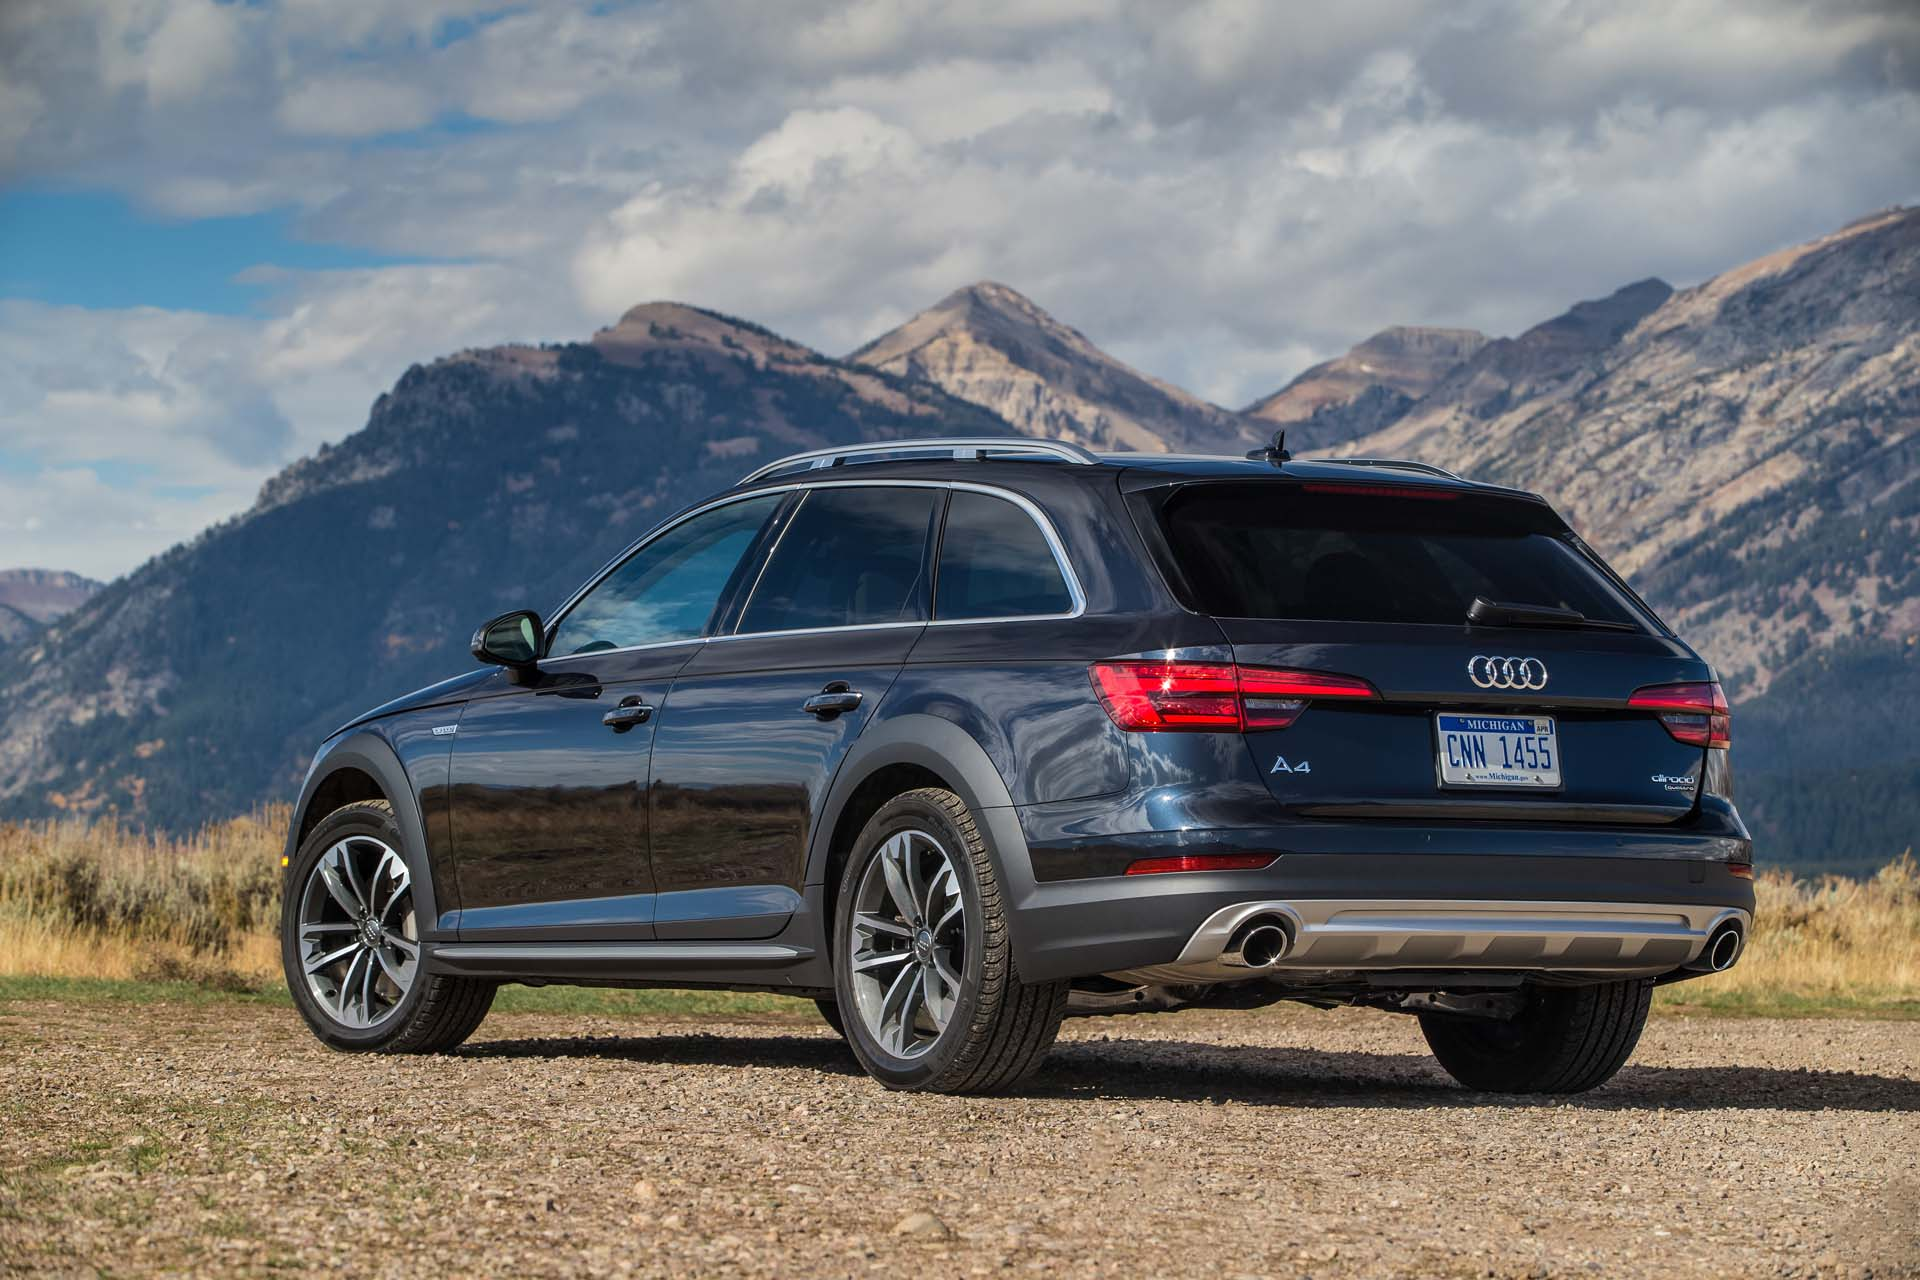 Used audi q5 for sale in canada 14